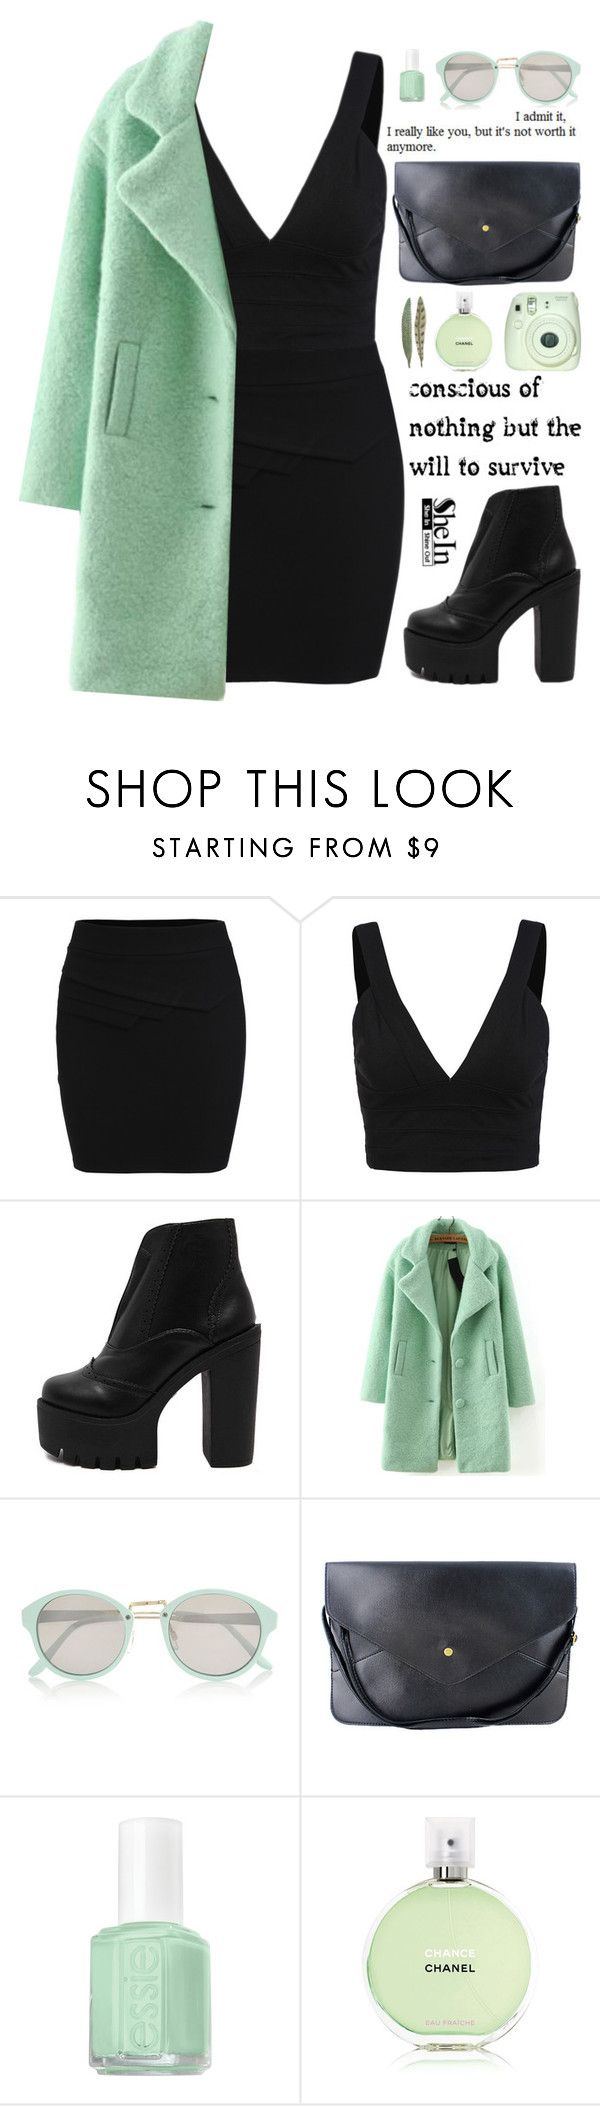 """""""SheIn 7"""" by scarlett-morwenna ❤ liked on Polyvore featuring WithChic, River Island, Essie, Chanel, vintage, women's clothing, women, female, woman and misses"""